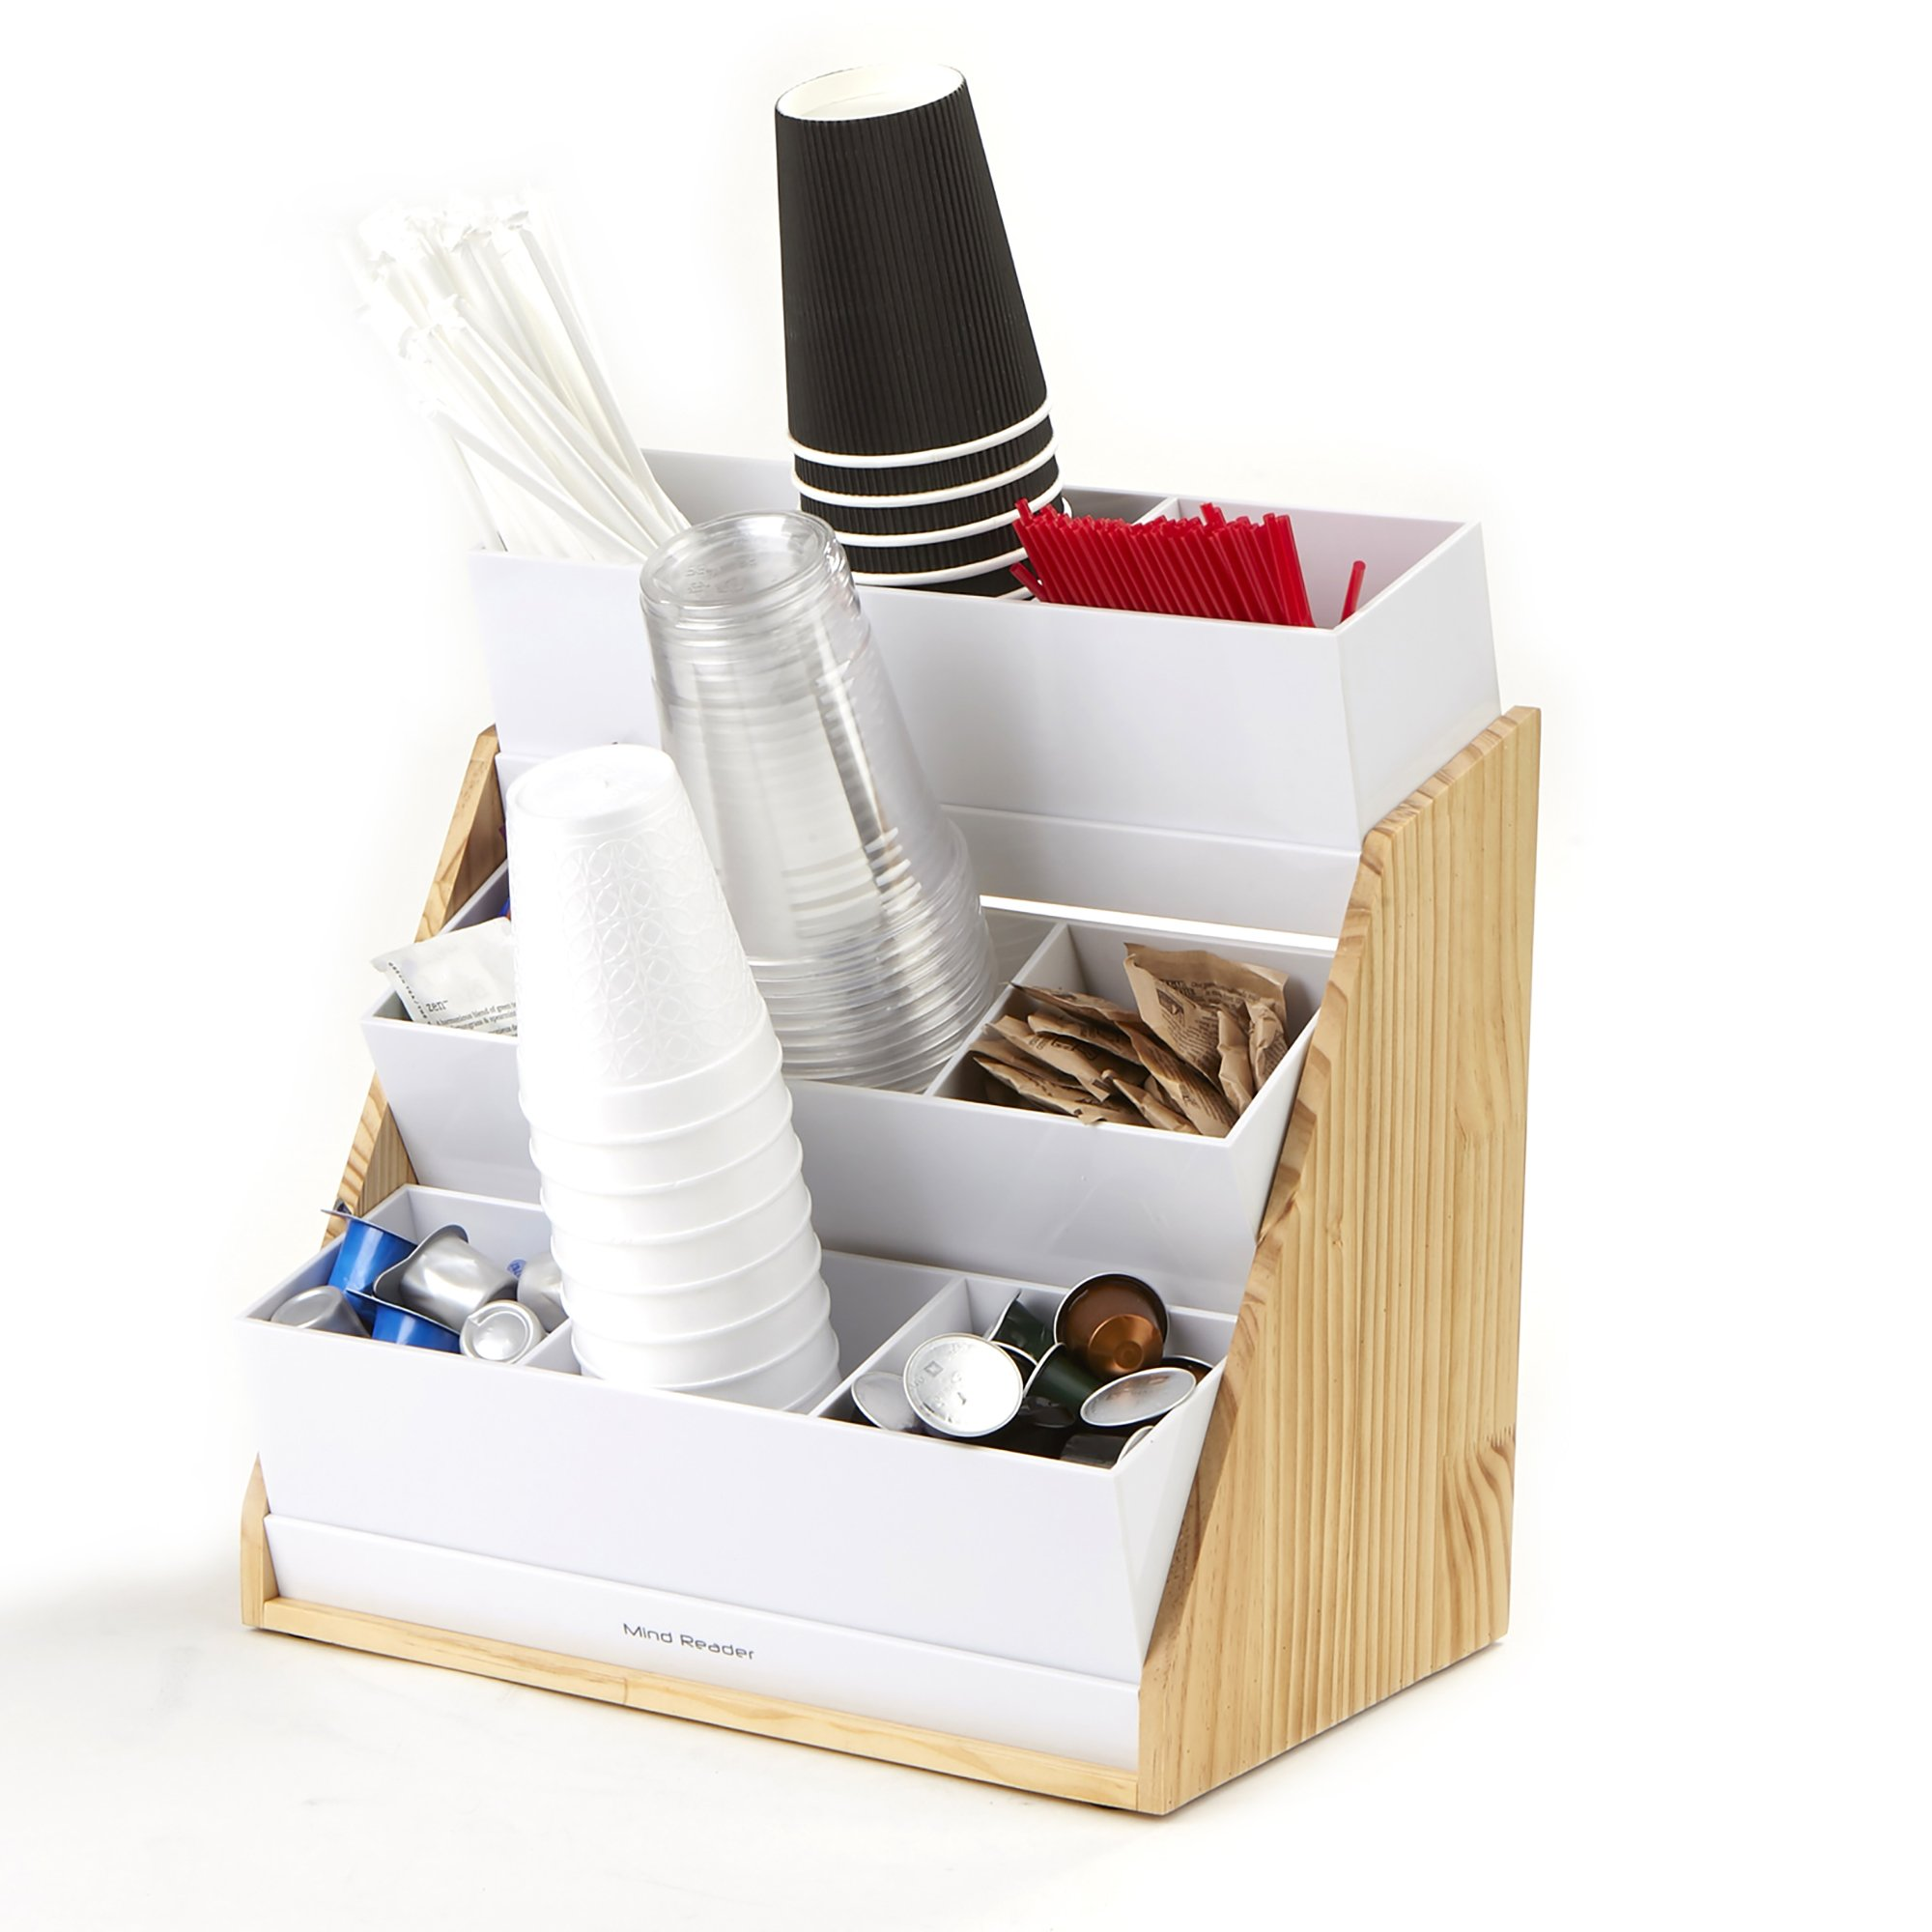 Mind Reader Condiment and Accessories Organizer, 9 Compartments, Wood by Mind Reader (Image #2)